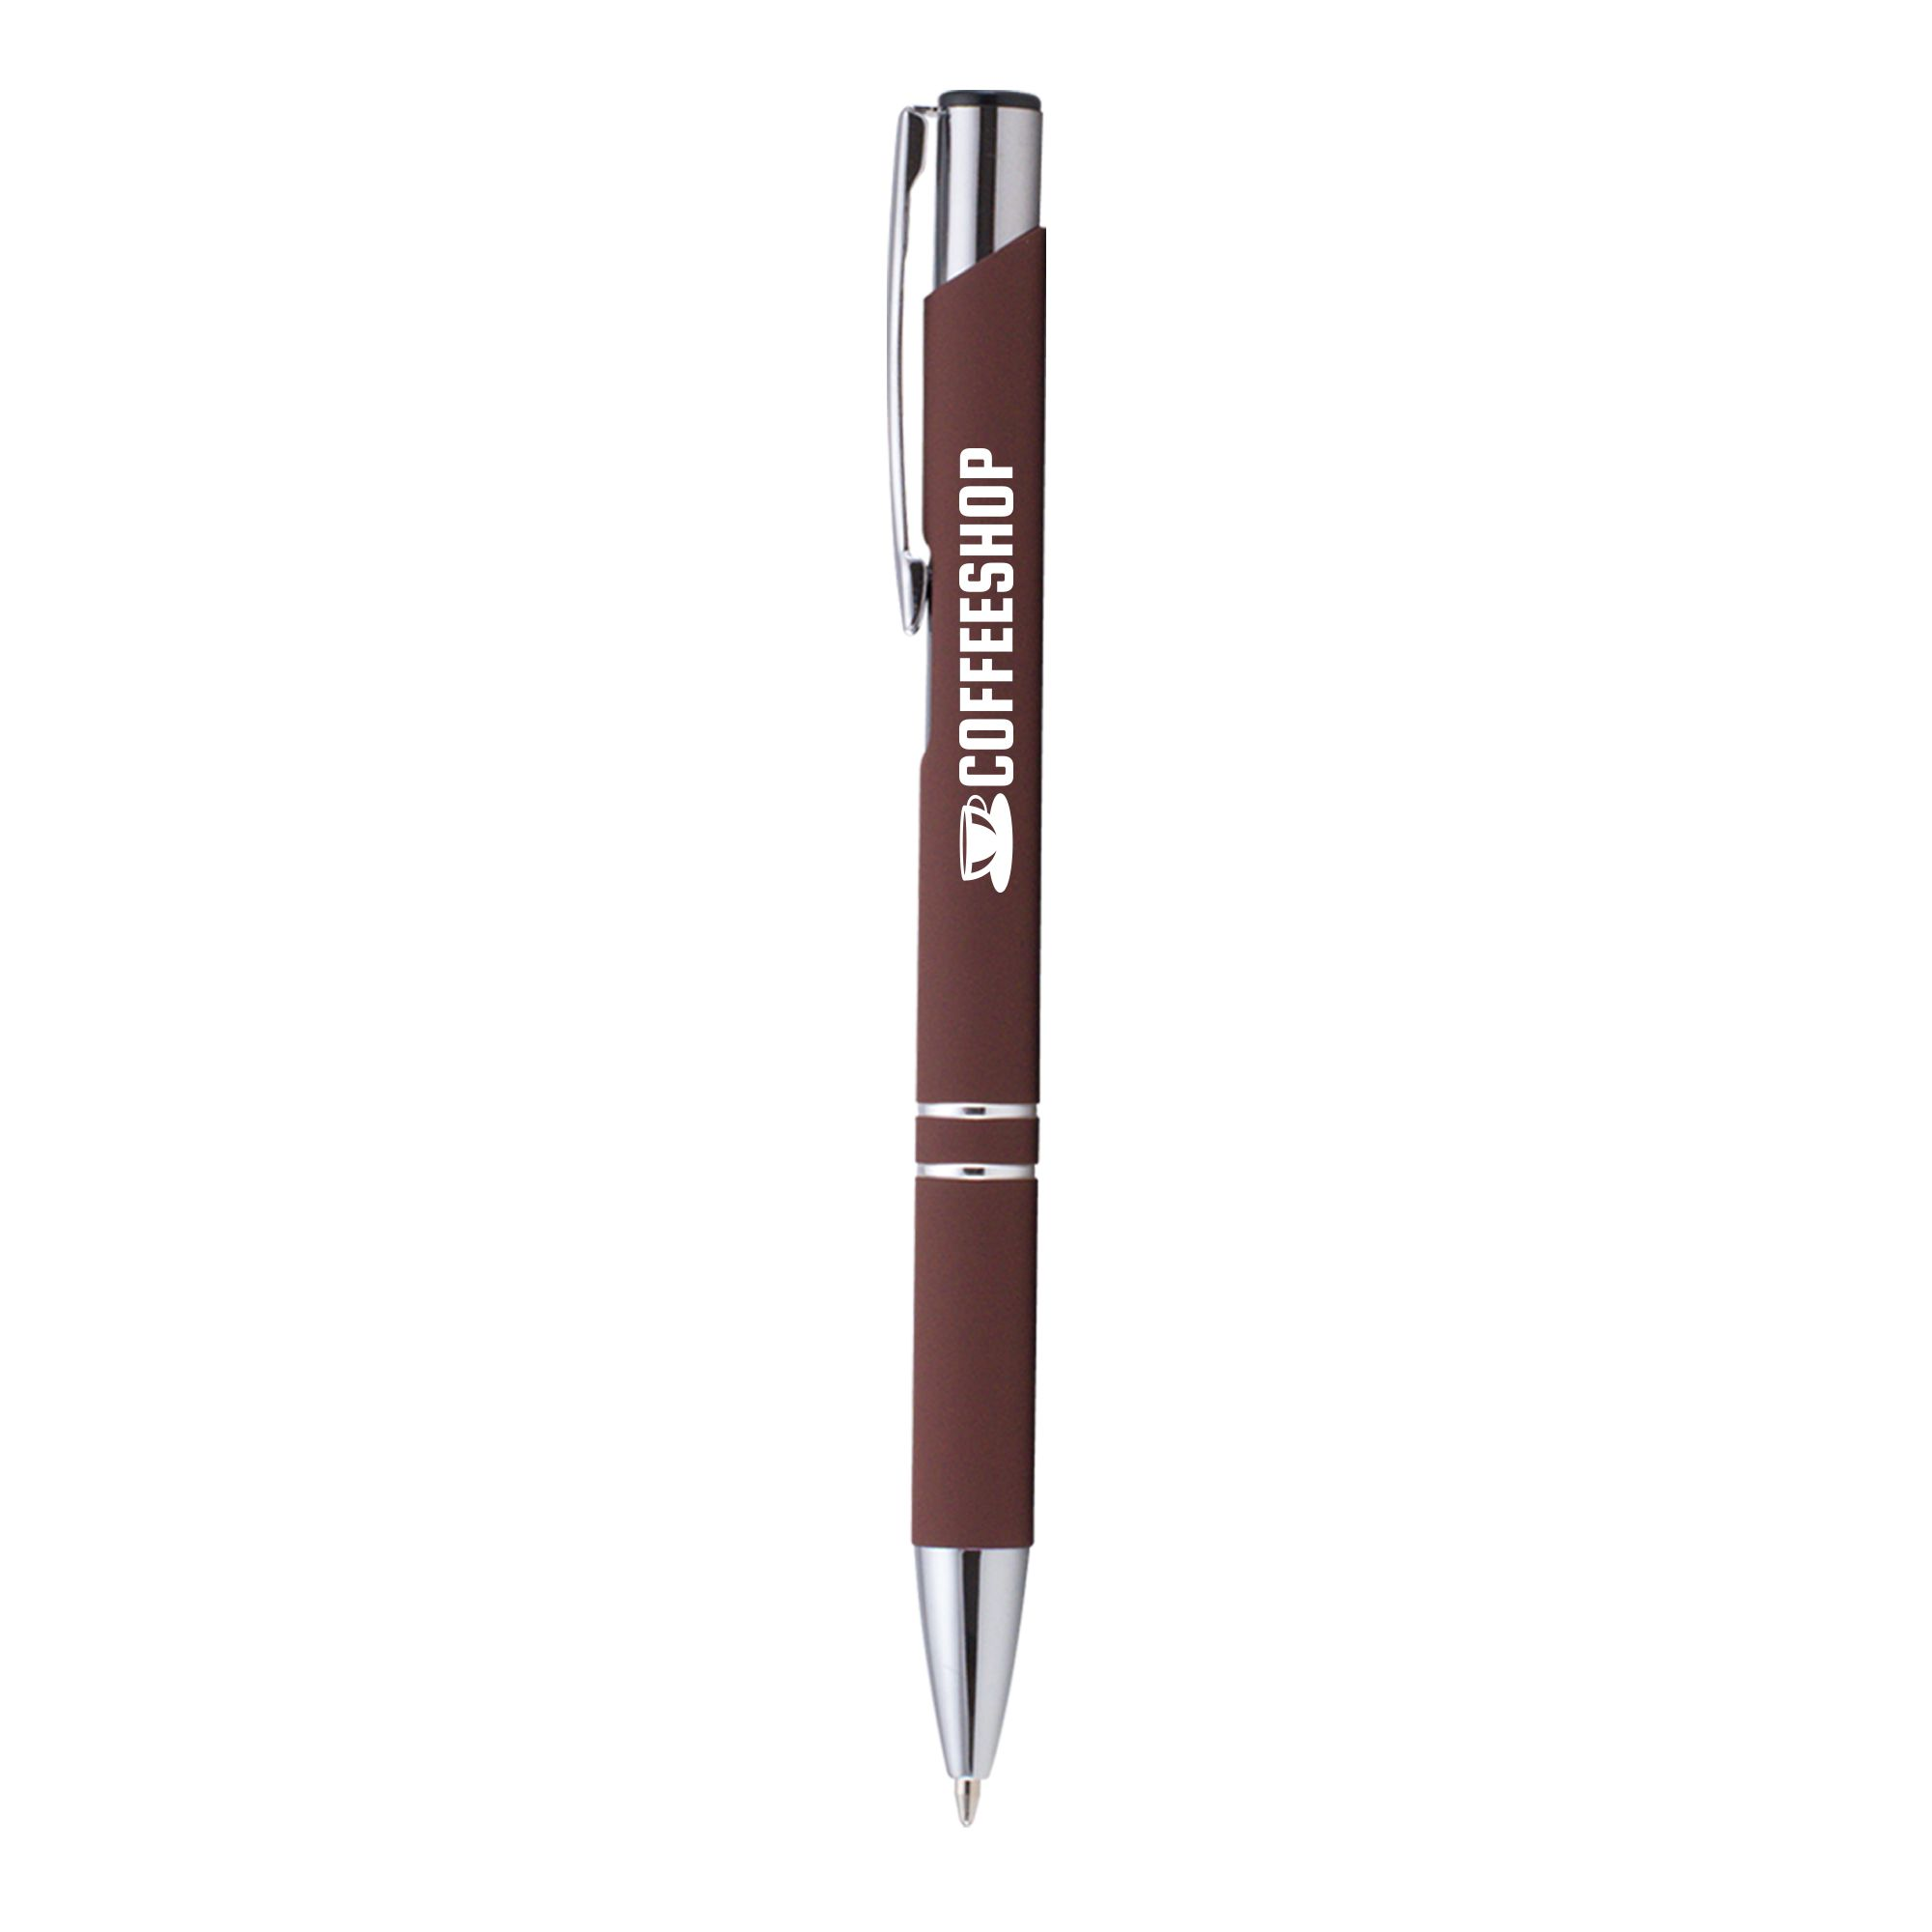 Goodies entreprise - Stylo bille publicitaire Crosby soft touch